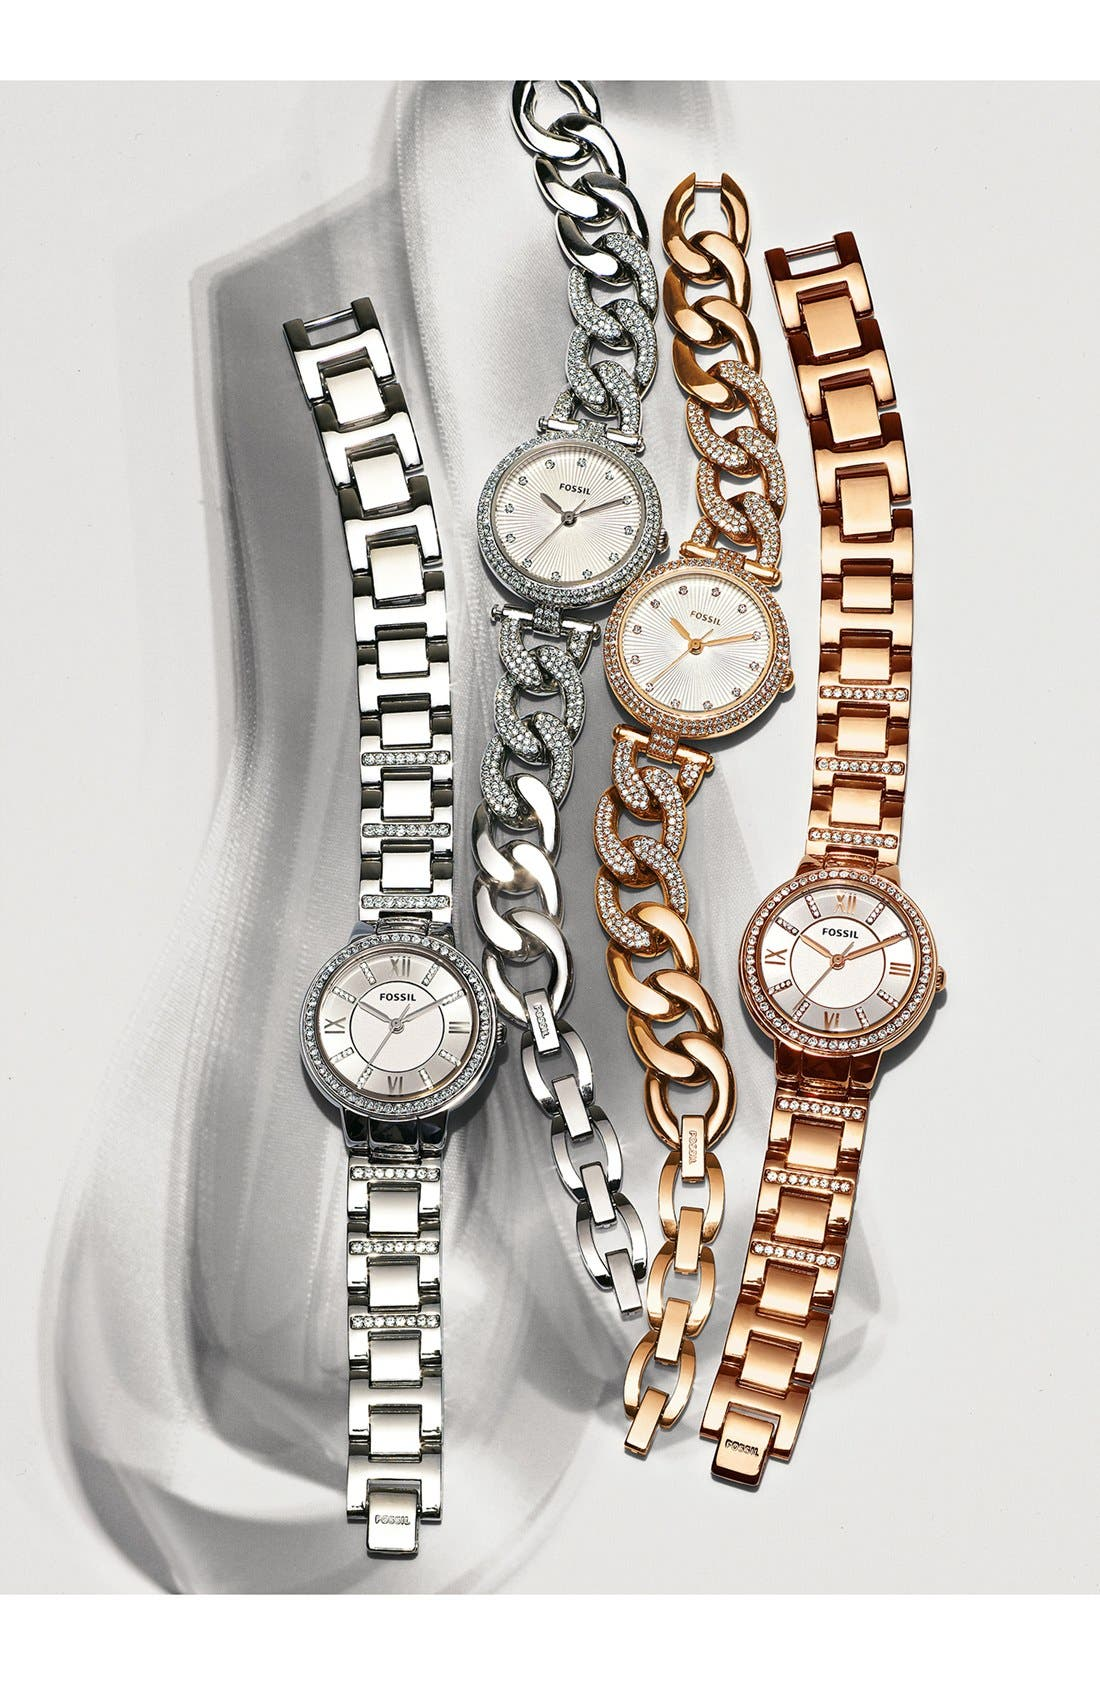 FOSSIL, 'Virginia' Crystal Accent Bracelet Watch, 30mm, Alternate thumbnail 5, color, ROSE GOLD/ WHITE/ ROSE GOLD